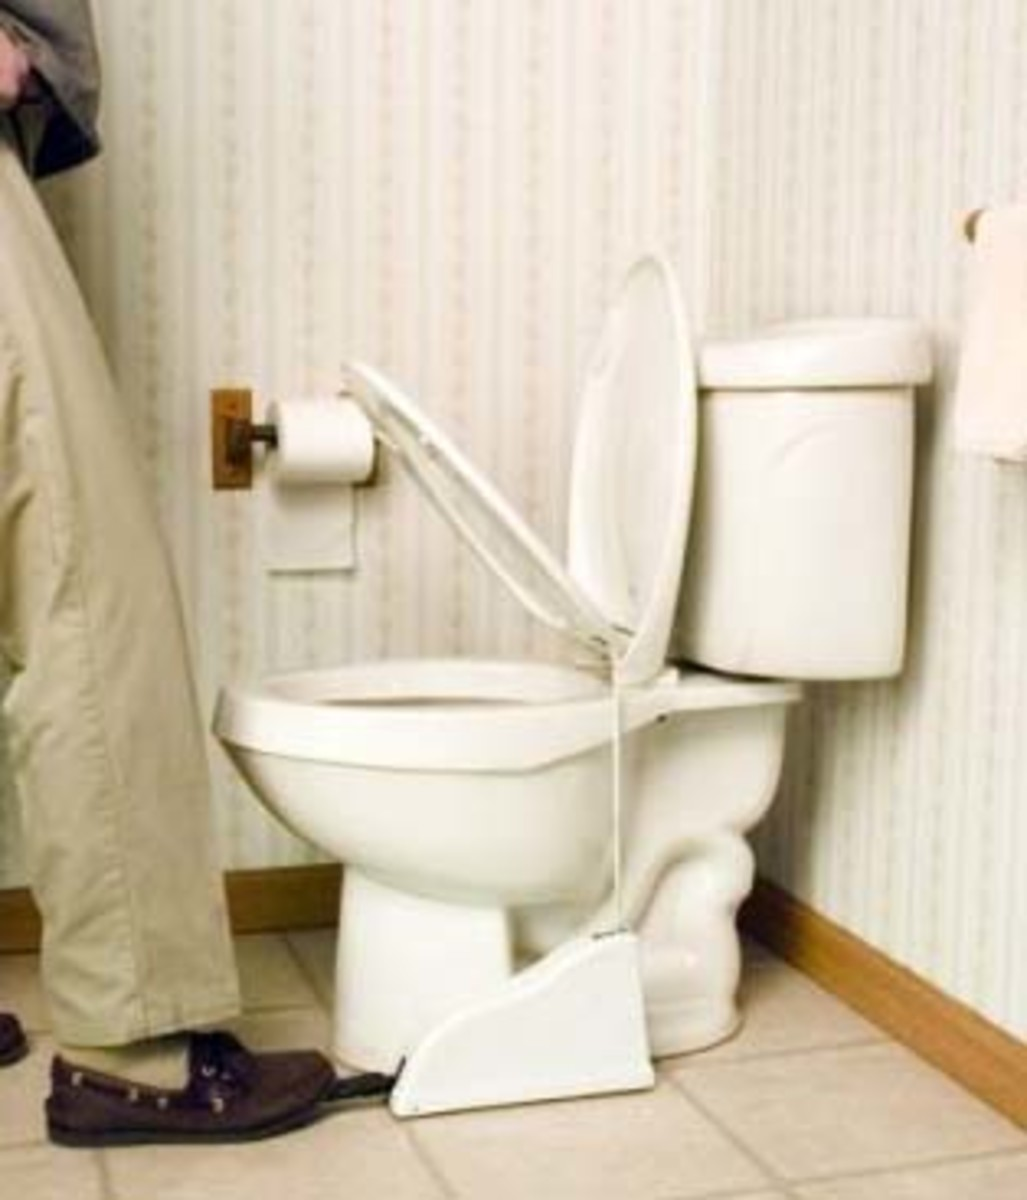 Battle of the toilet seat, Whose to be blame, Solution:  Available on Amazon: Toilet Seat Lifter.